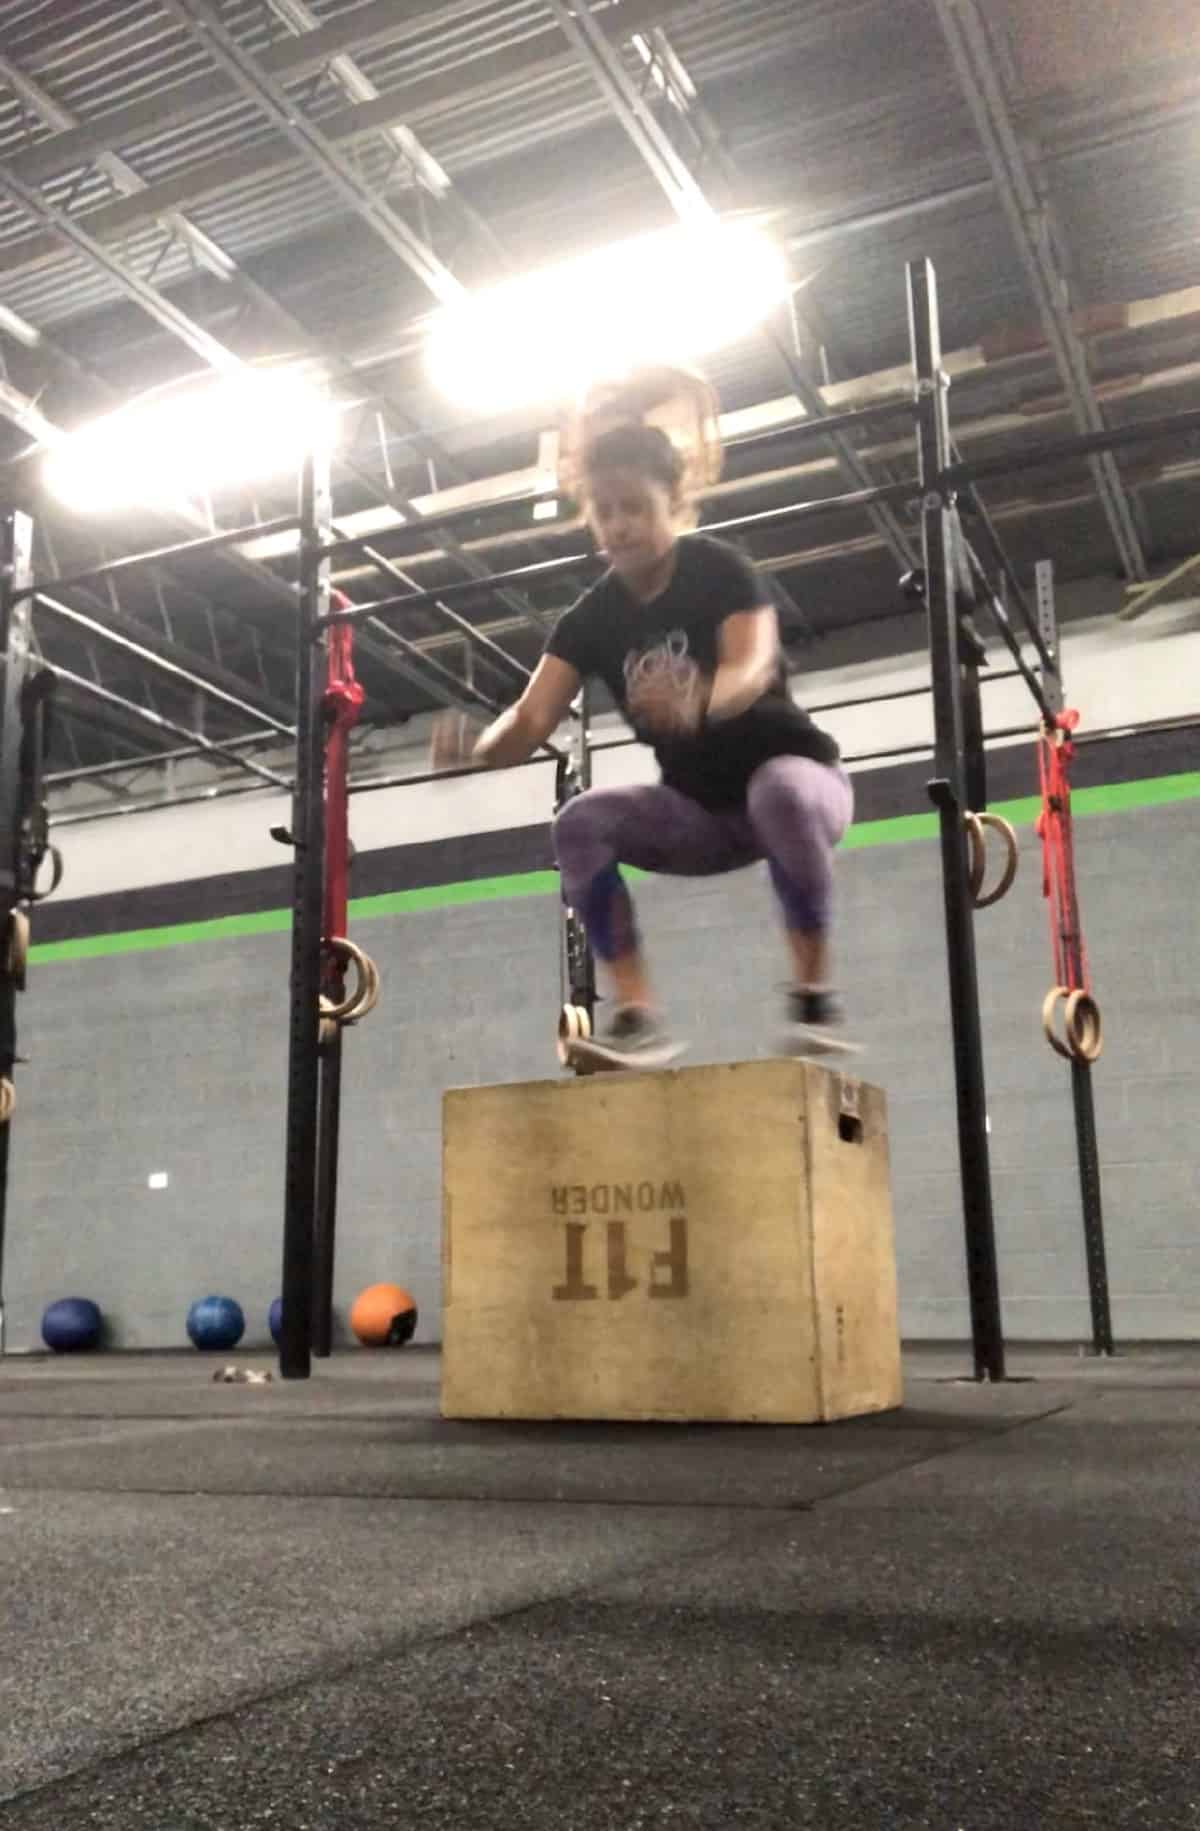 Girl jumping up onto a wooden box doing a box jump